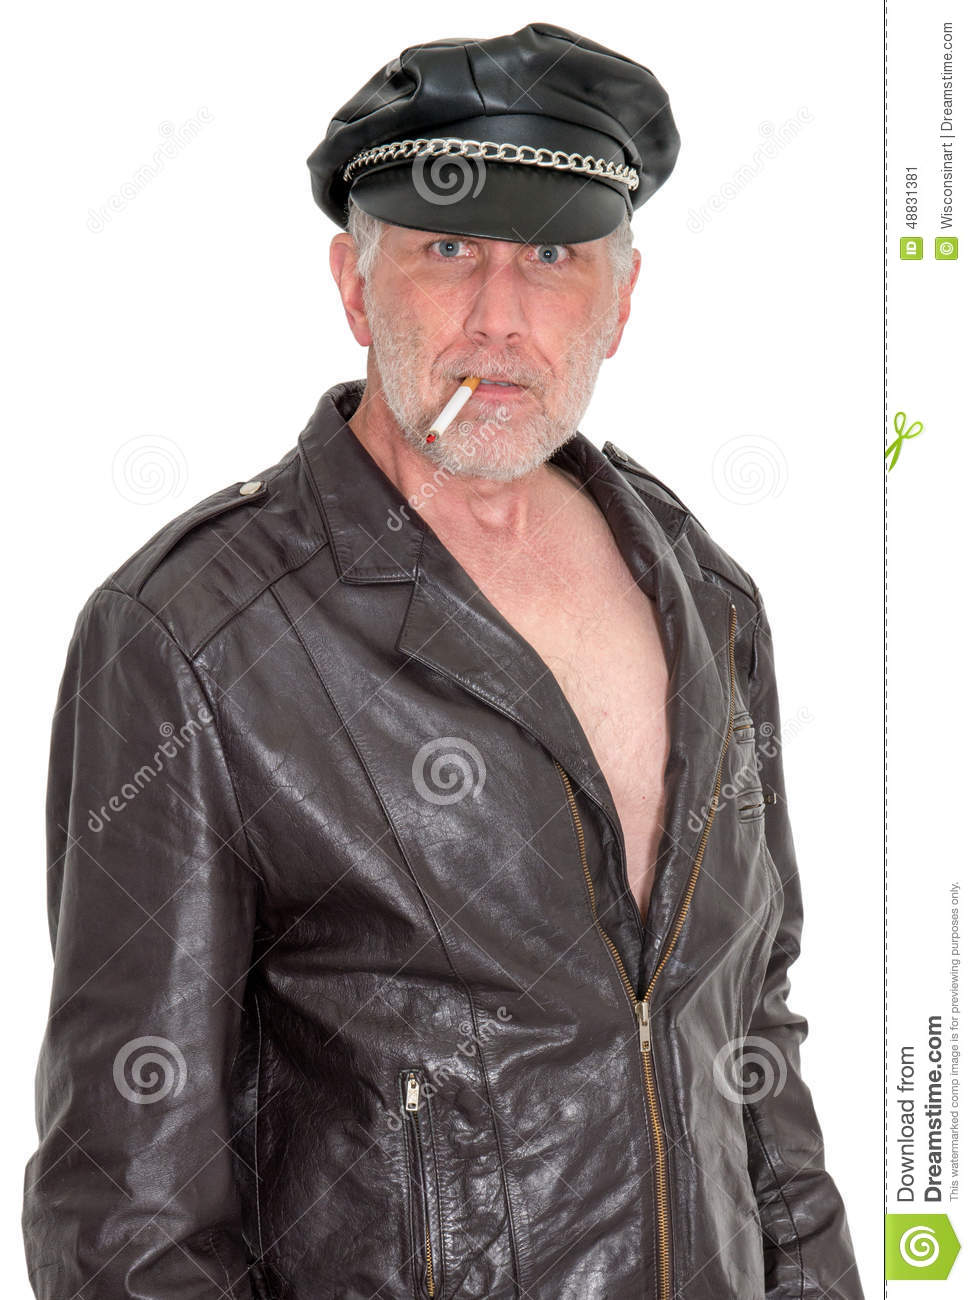 Funny, Scary Tough Guy Biker Stock Photo - Image: 48831381